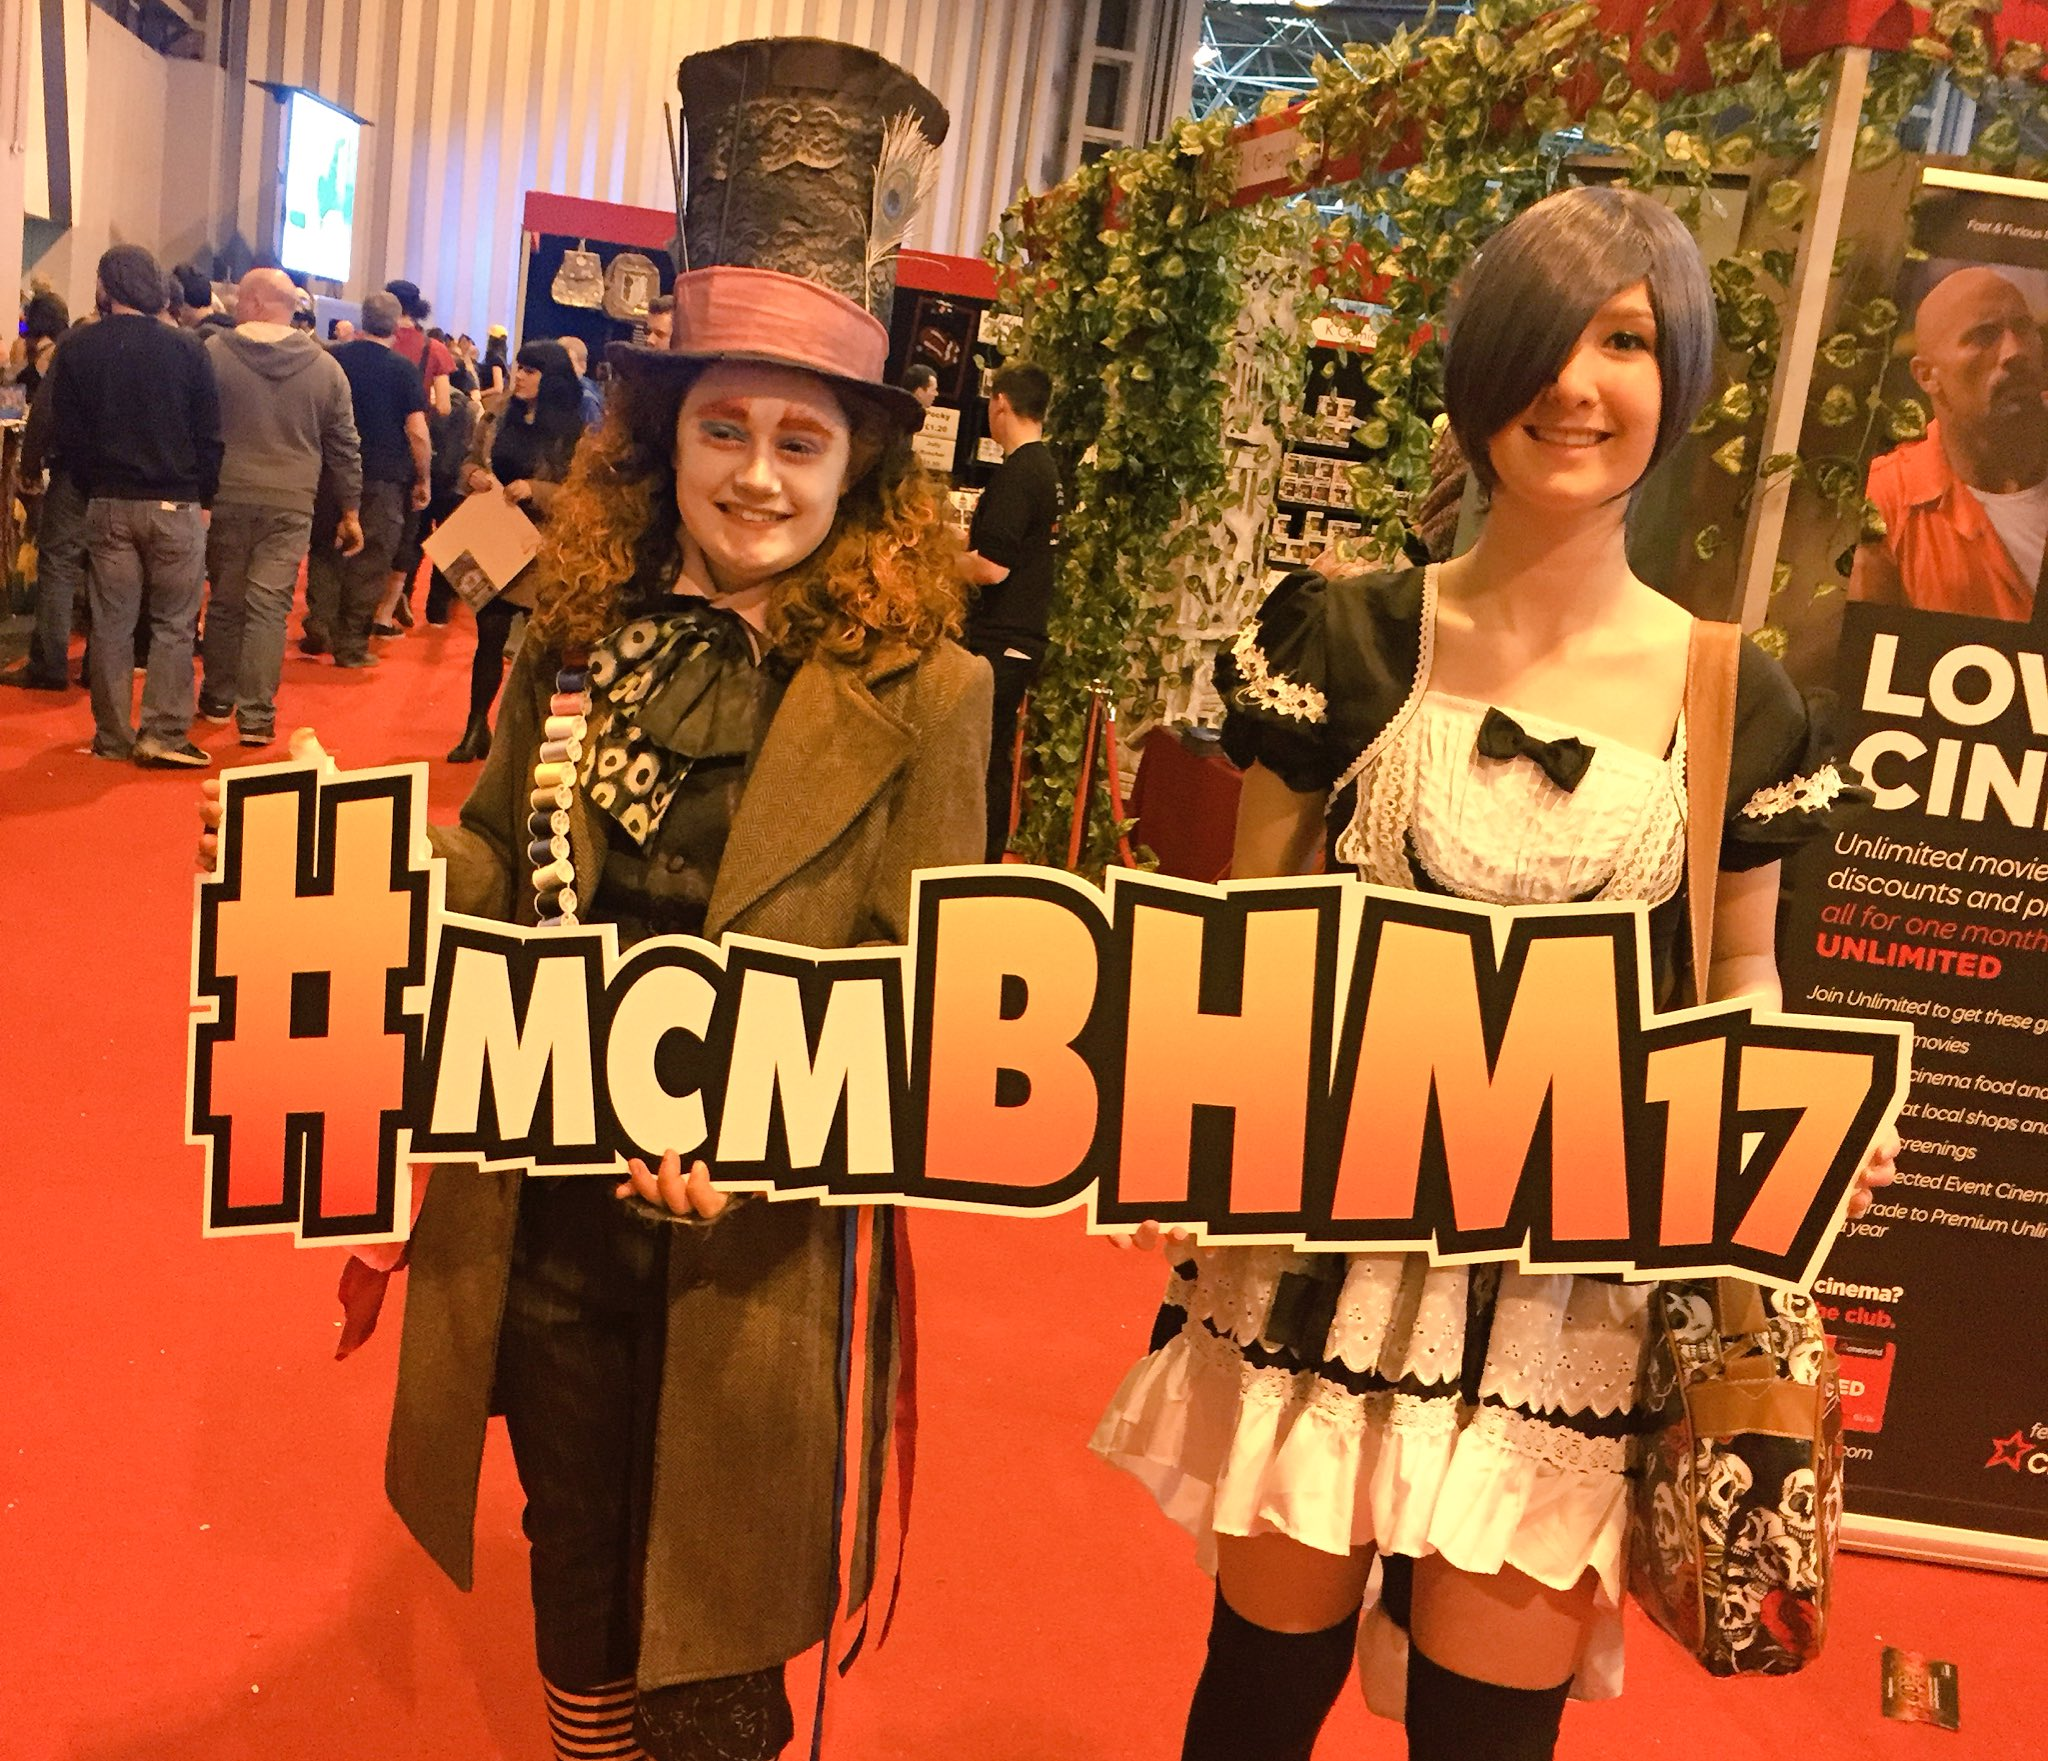 The hashtag is back! Have you been spotted? Check out our Instagram! #mcmBHM17 https://t.co/JEeSjSwNZE